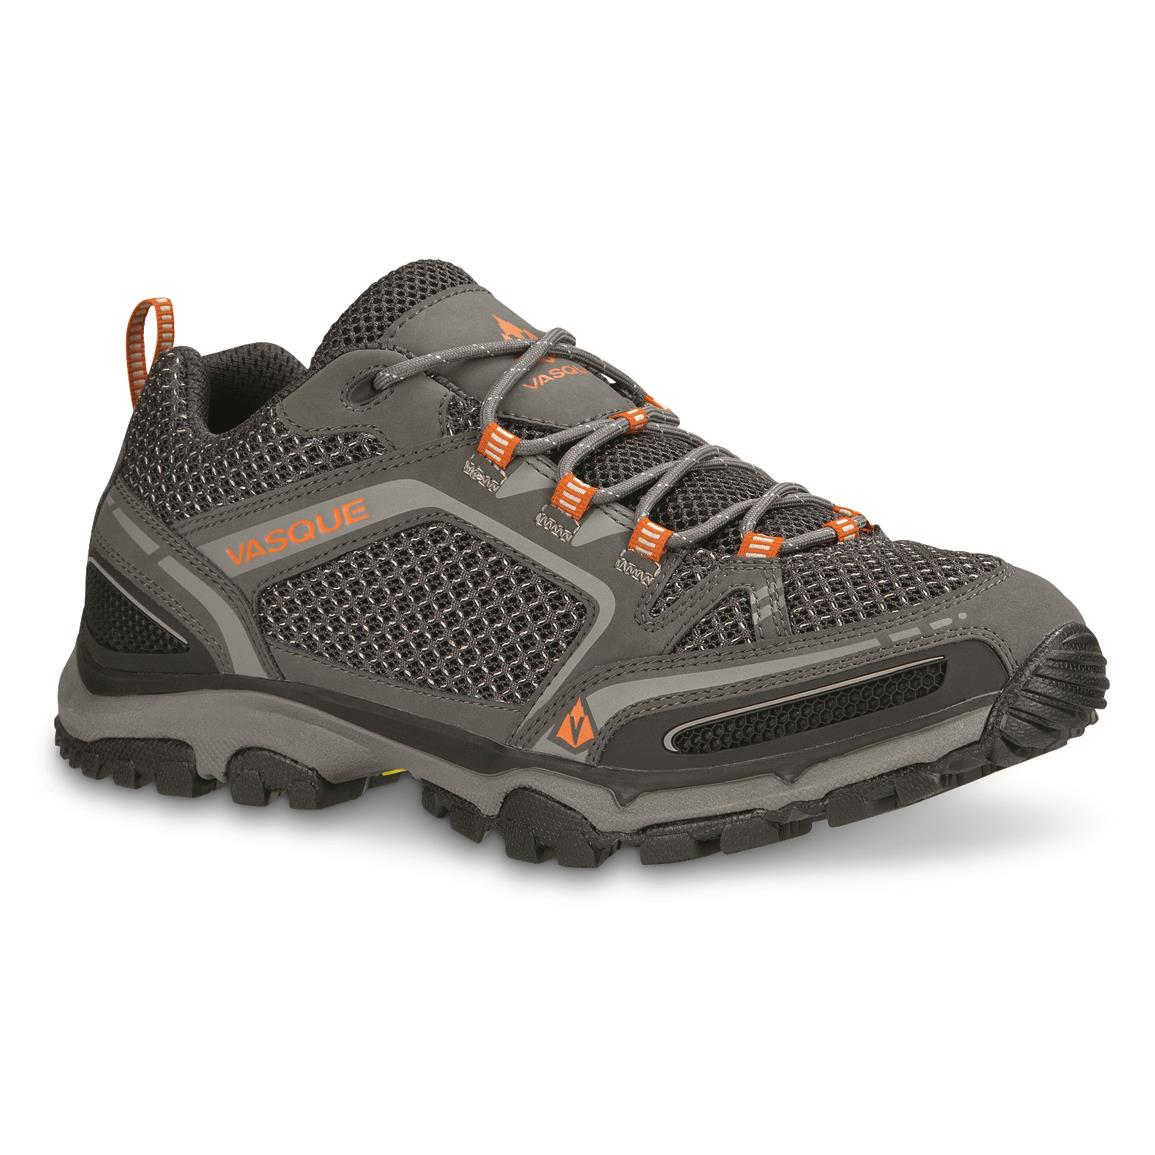 Vasque Men's Inhaler II Low Hiking Shoes, Vibram, Magnet